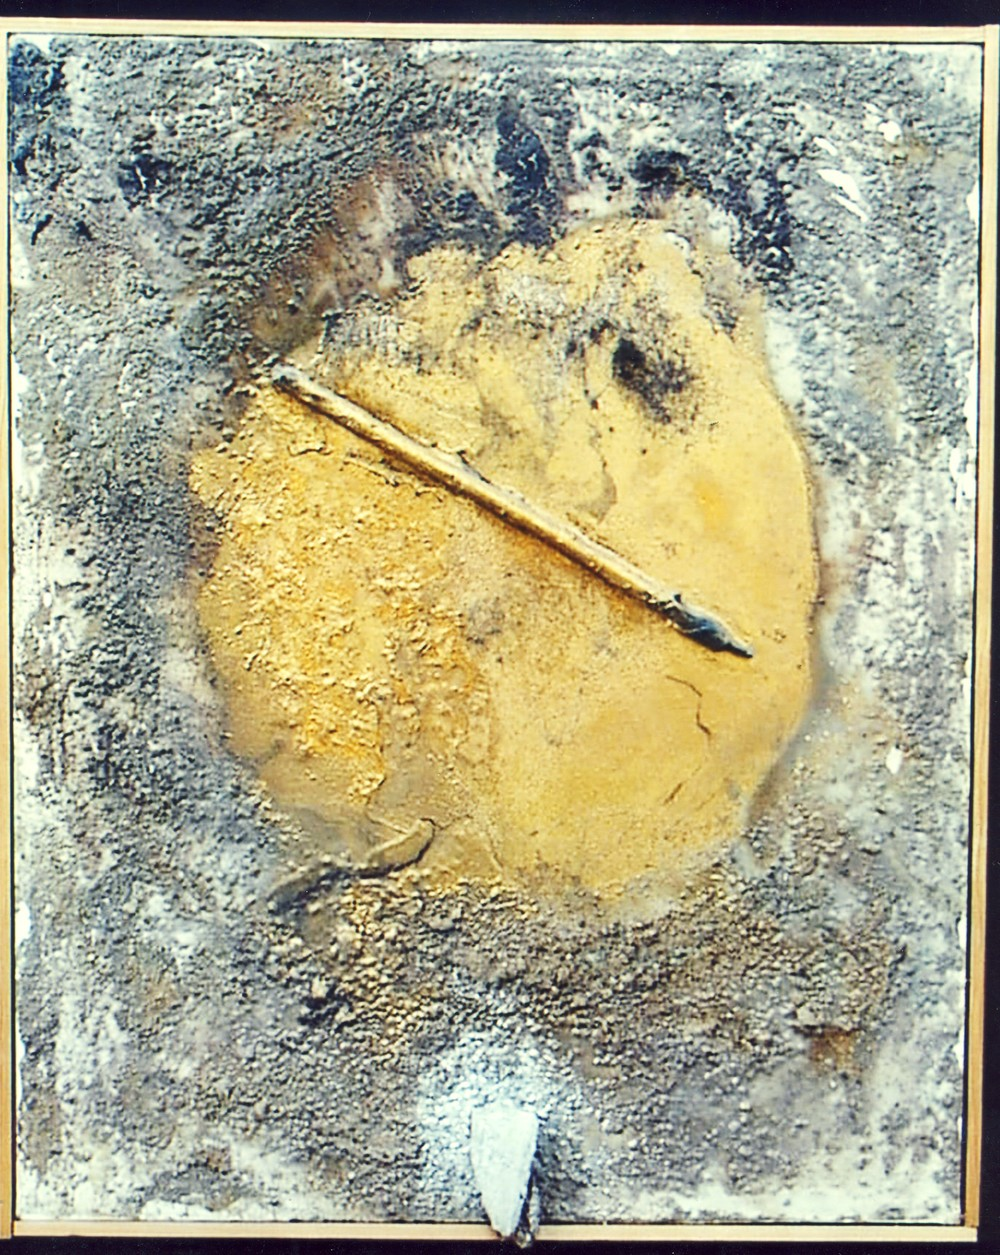 La ruota dell'ignoranza, 1969, polimaterico su tela, cm 80 x 65   La ruota dell'ignoranza, 1969, mixed media on canvas, cm 80 x 65